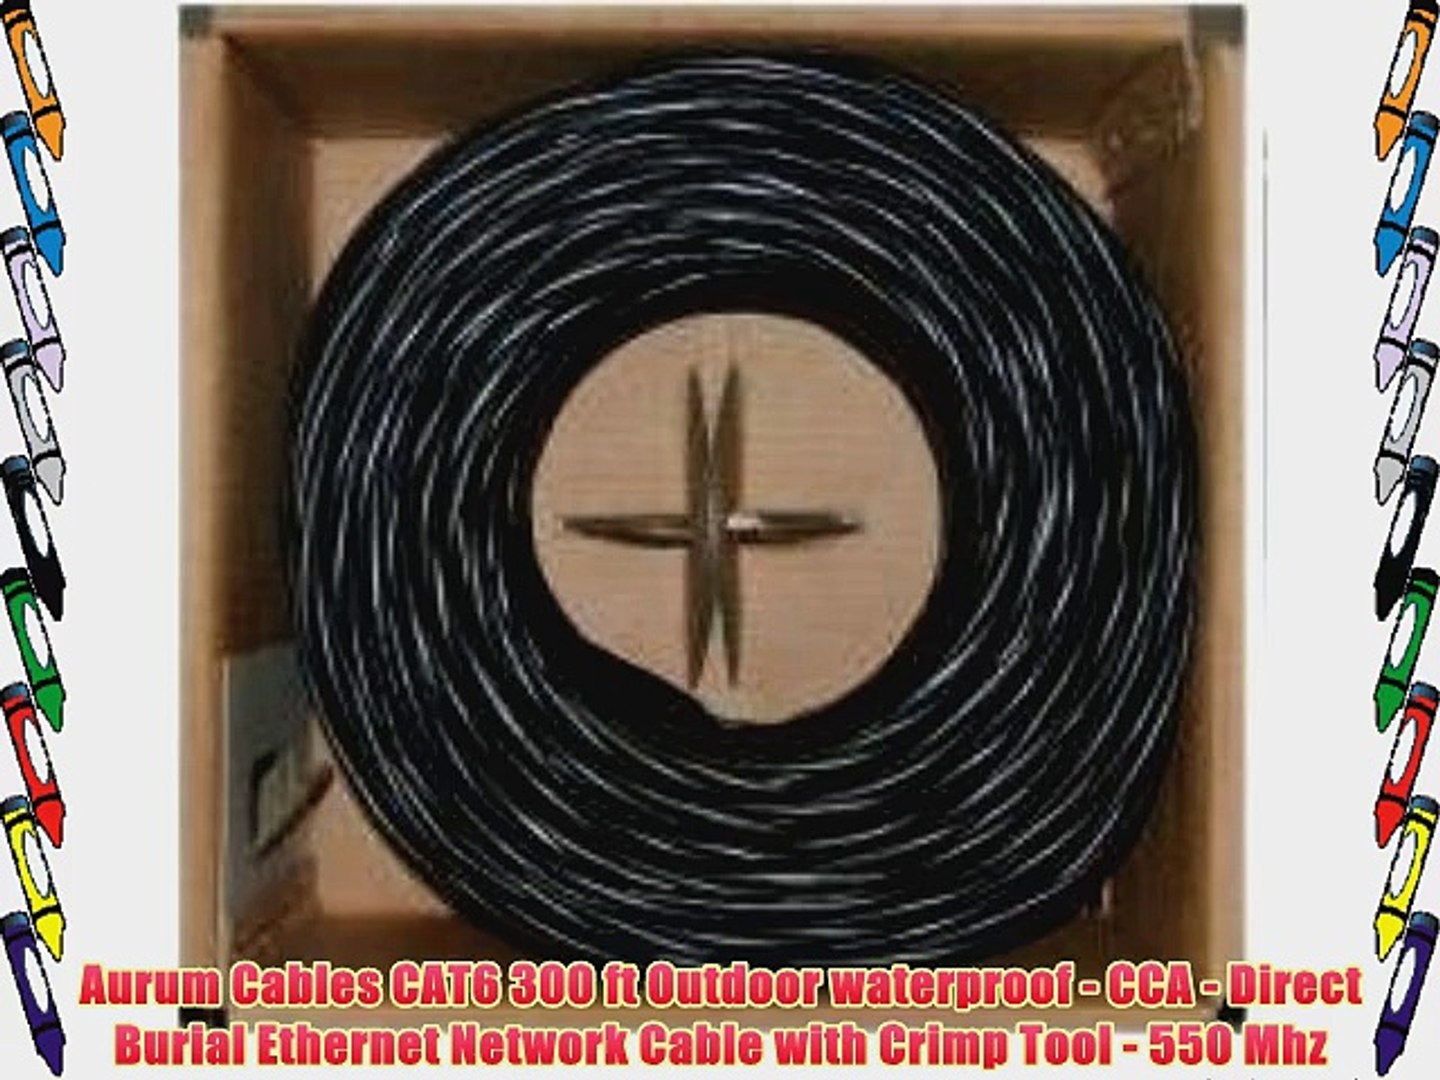 Cables.com 250 Feet Cat5e Outdoor Waterproof Shielded Direct Burial Ethernet Cable